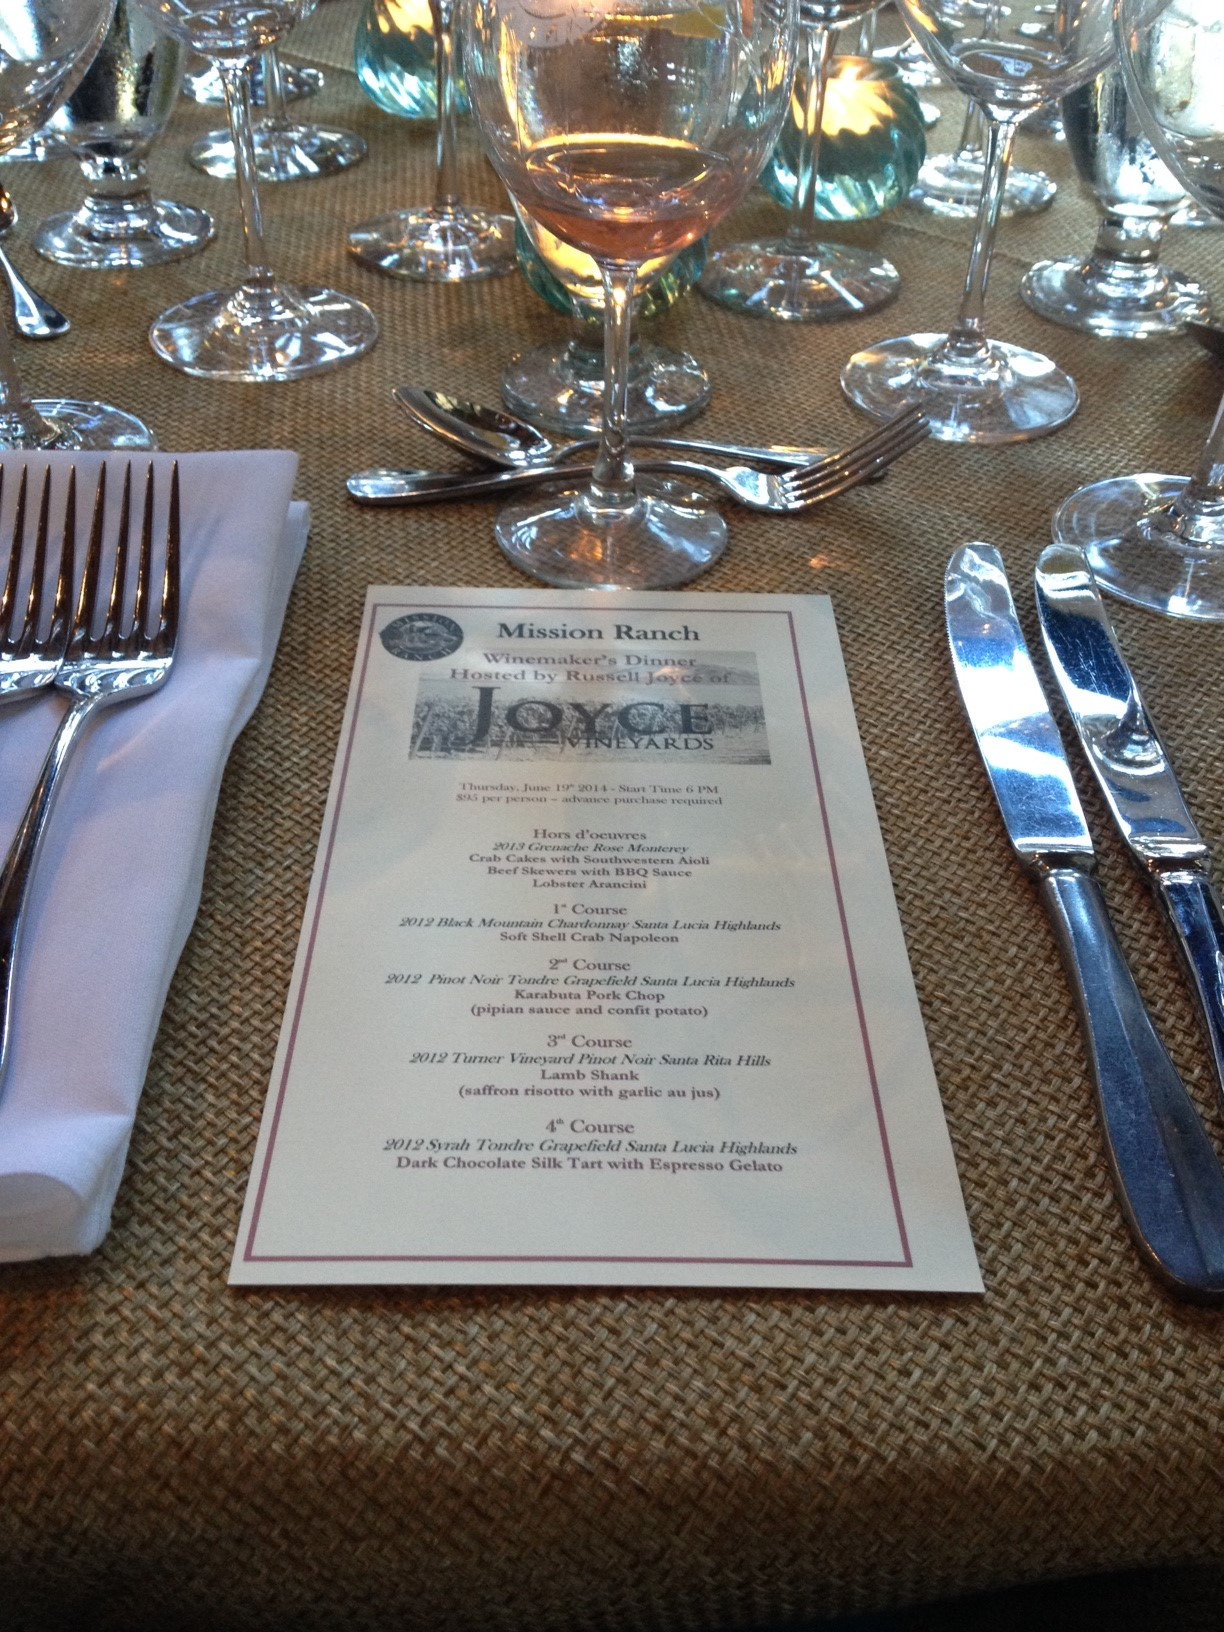 Joyce Winemaker's Dinner at Mission Ranch